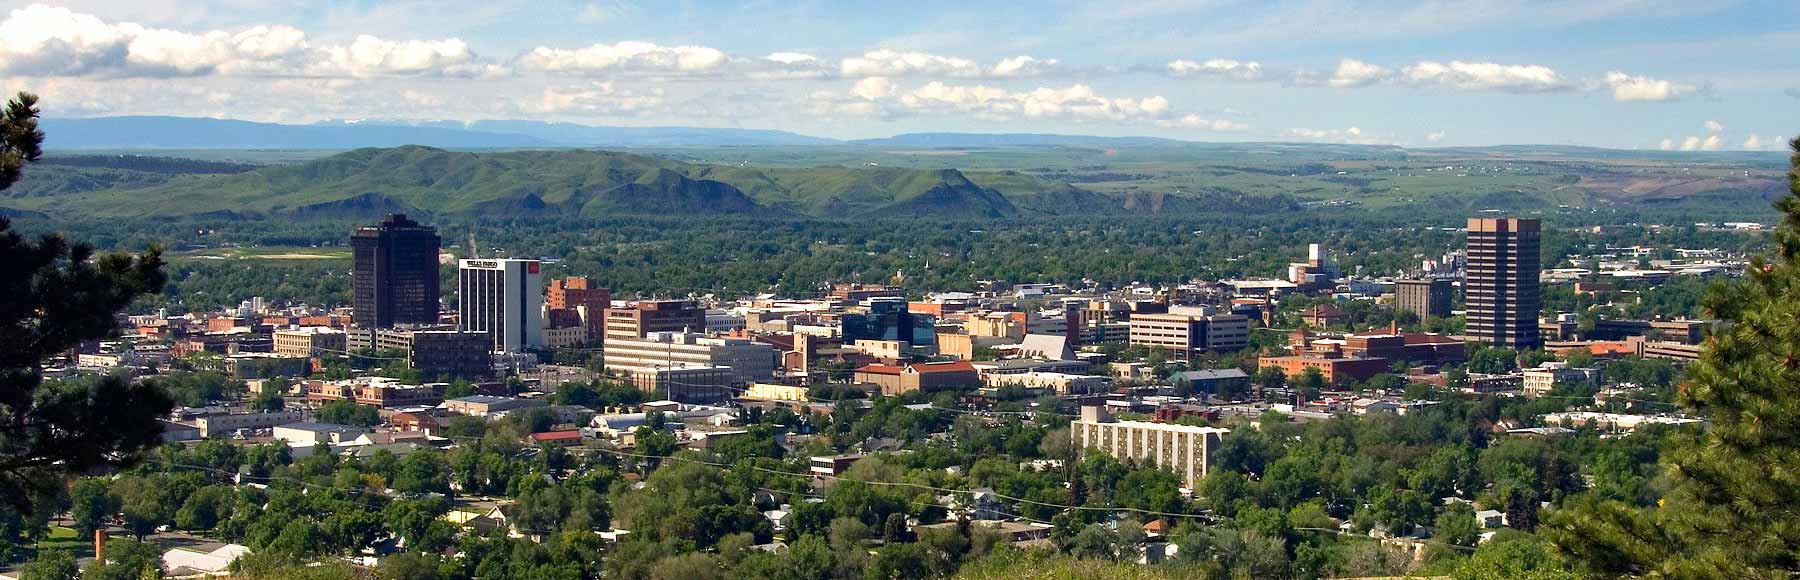 Billings, Montana Cost of Living 2020 | Affiliated Mortgage